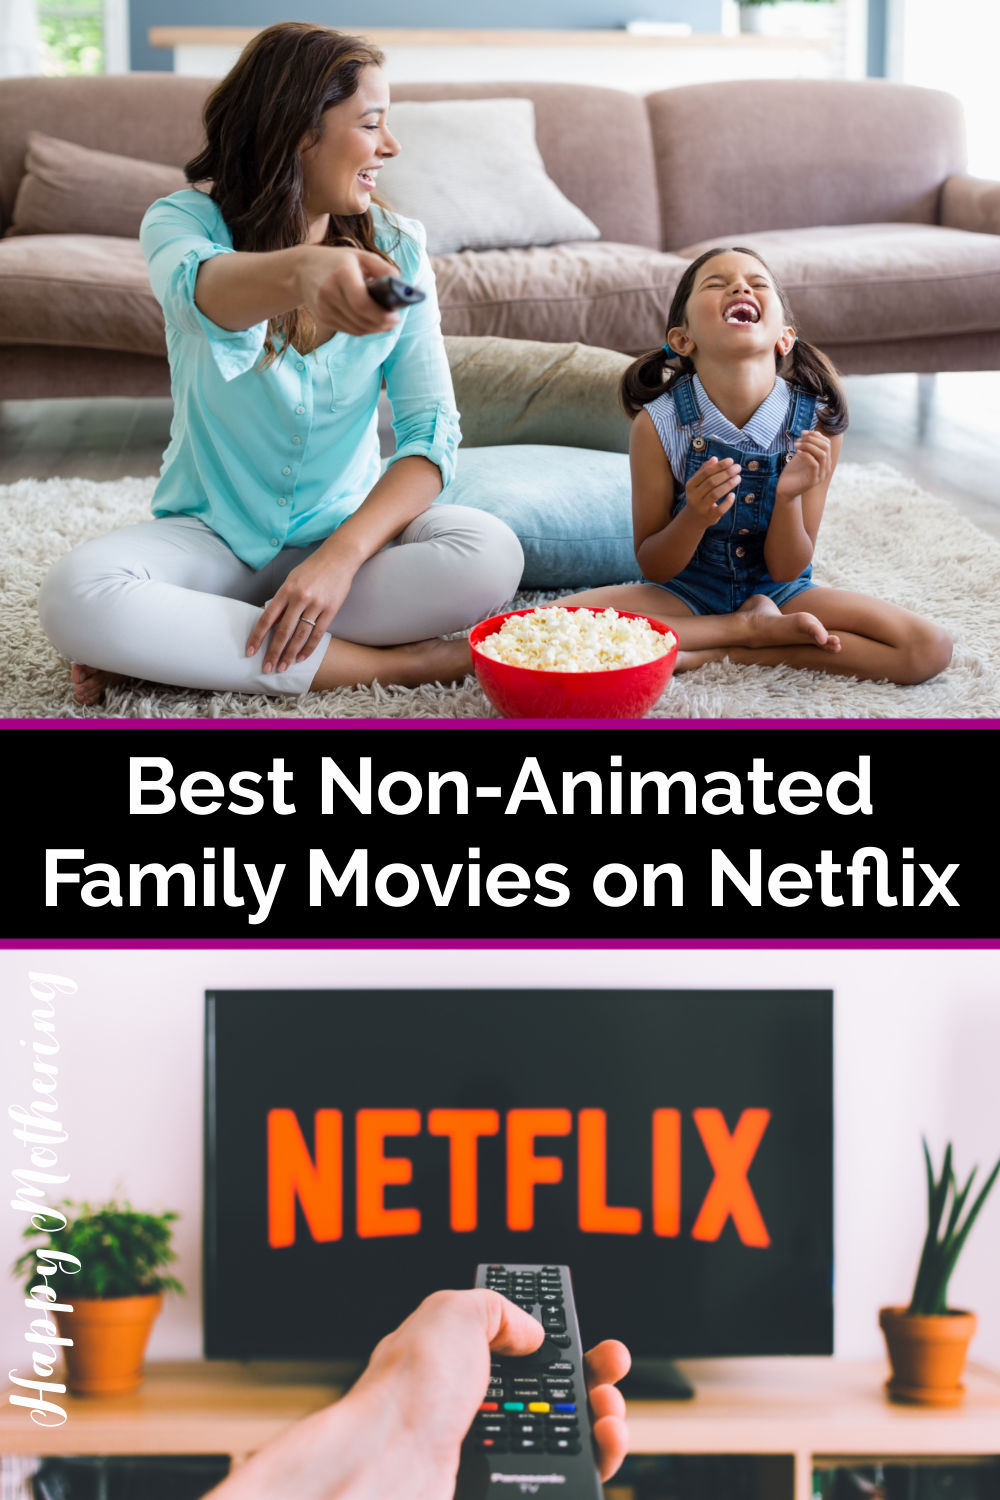 Woman holding TV remote while little girl laughs and eats popcorn; remote pointed at TV with Netflix on screen.